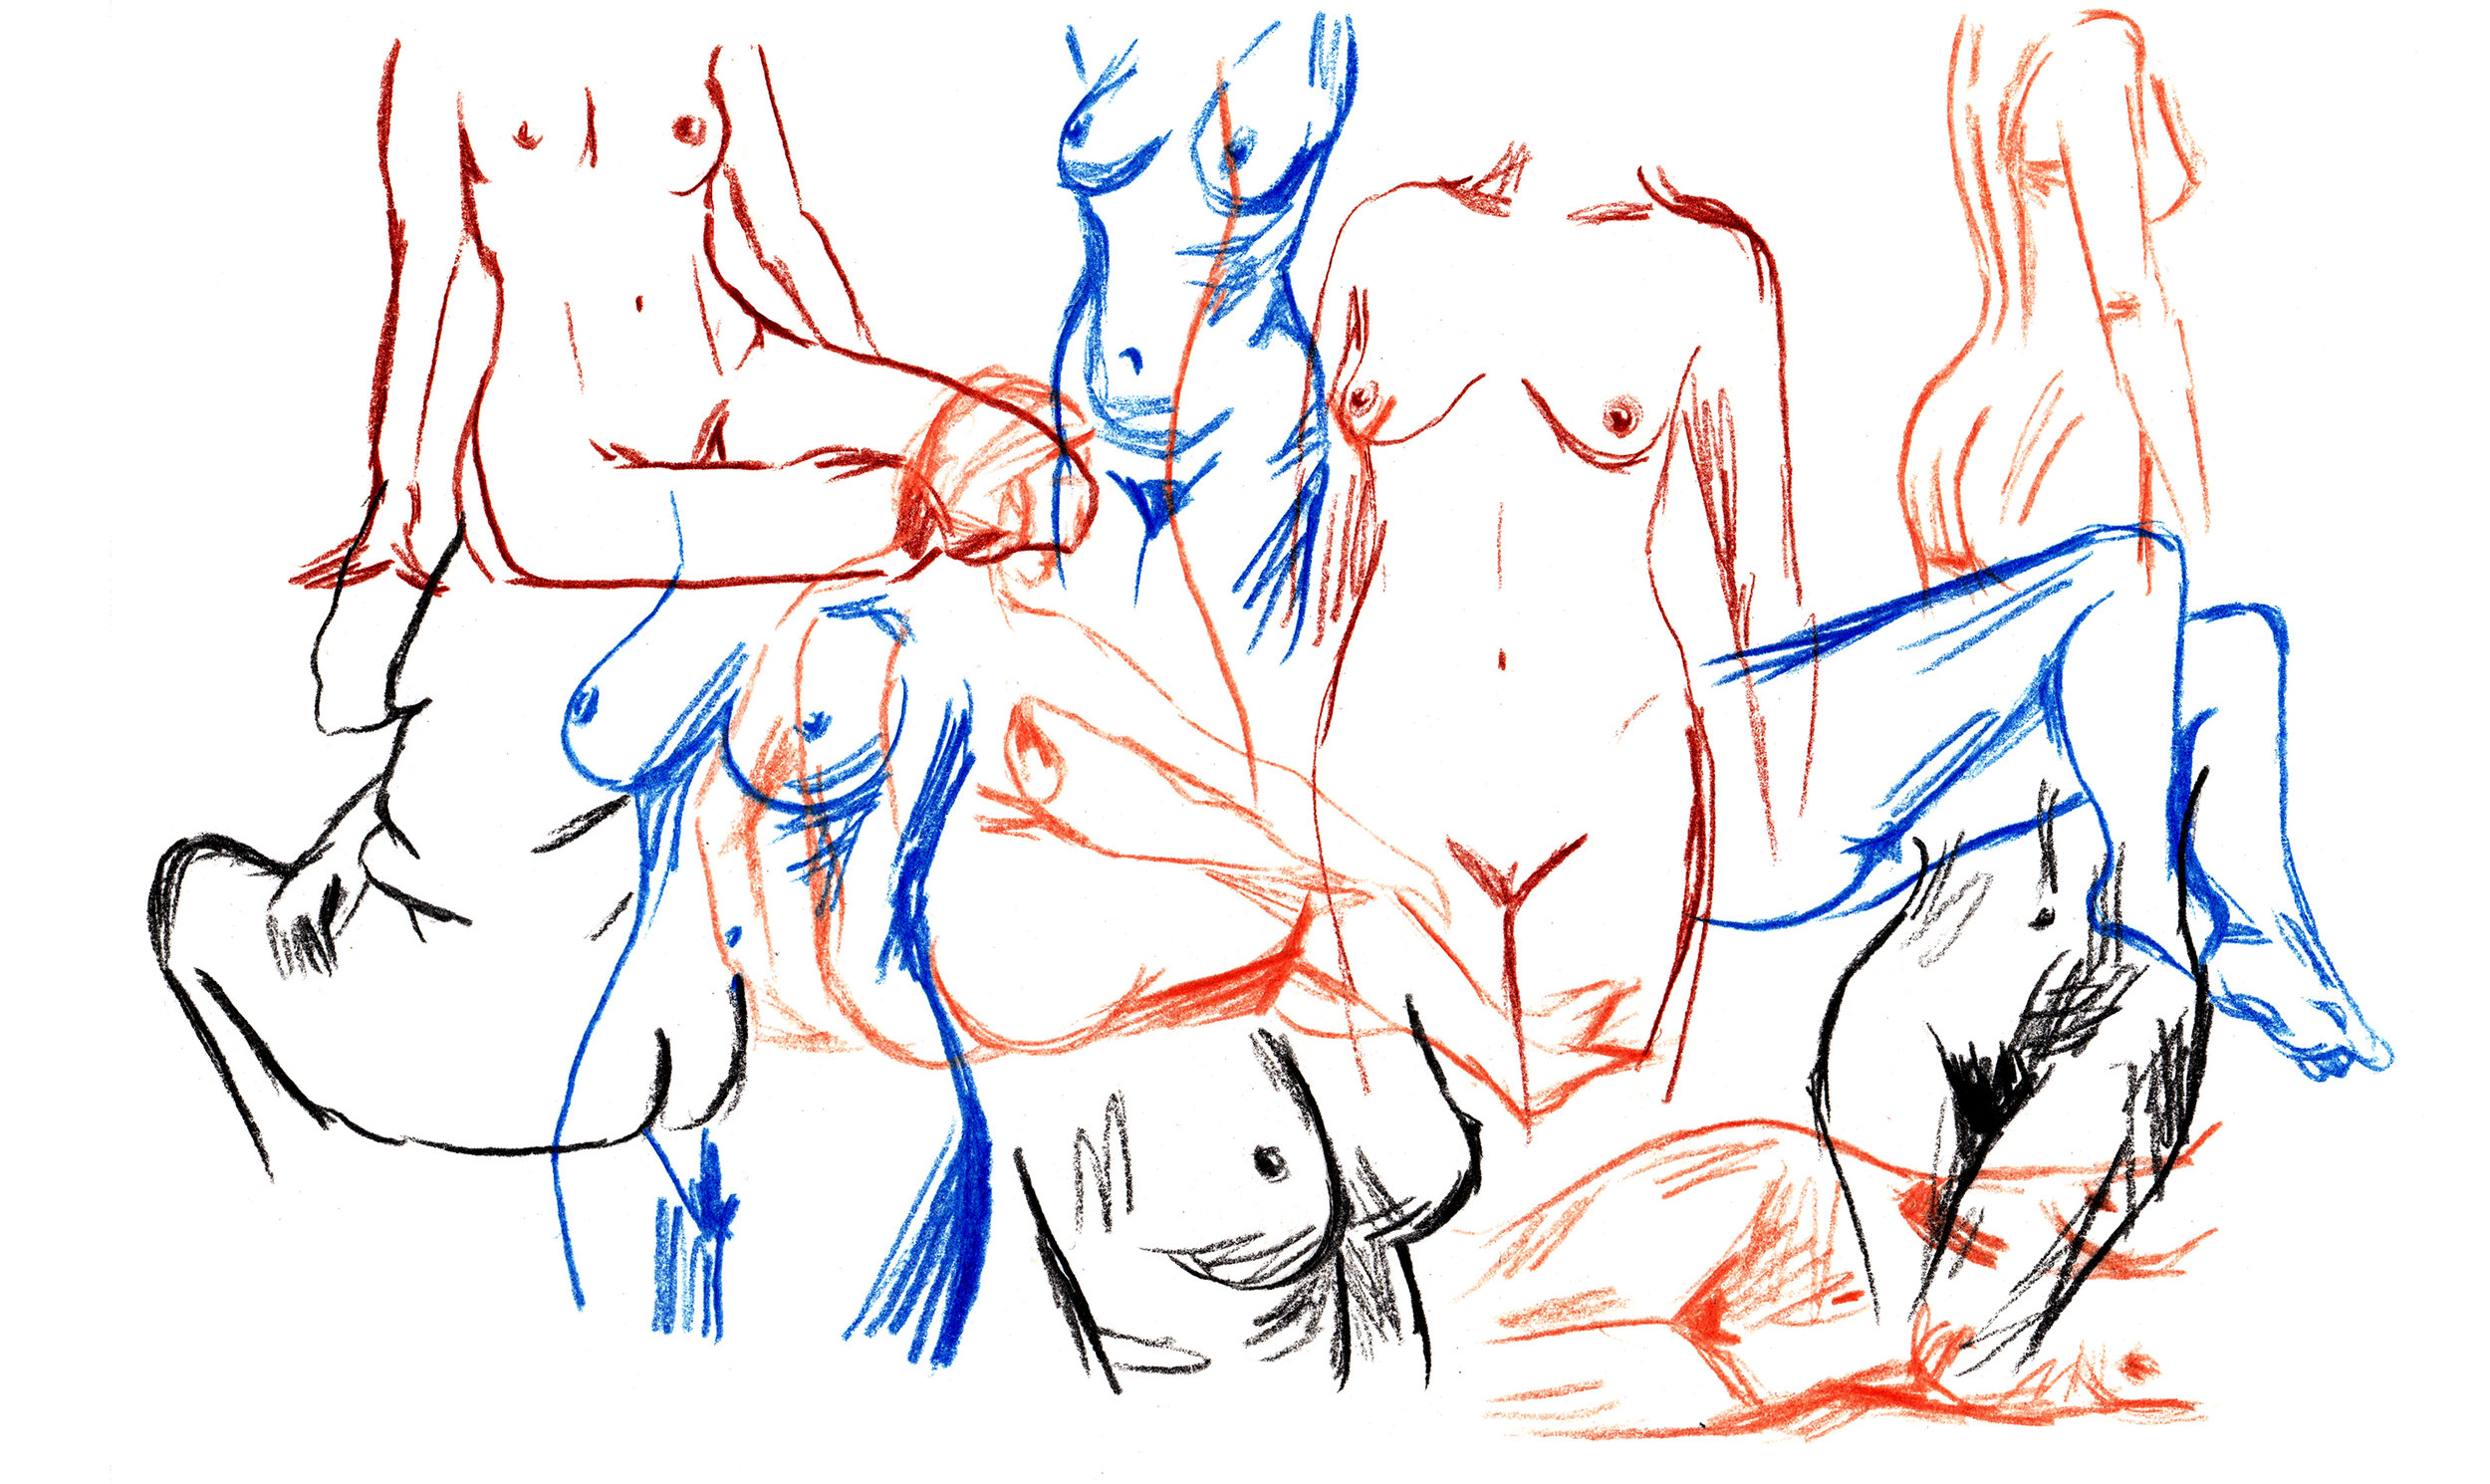 Quick pencil study of female form.